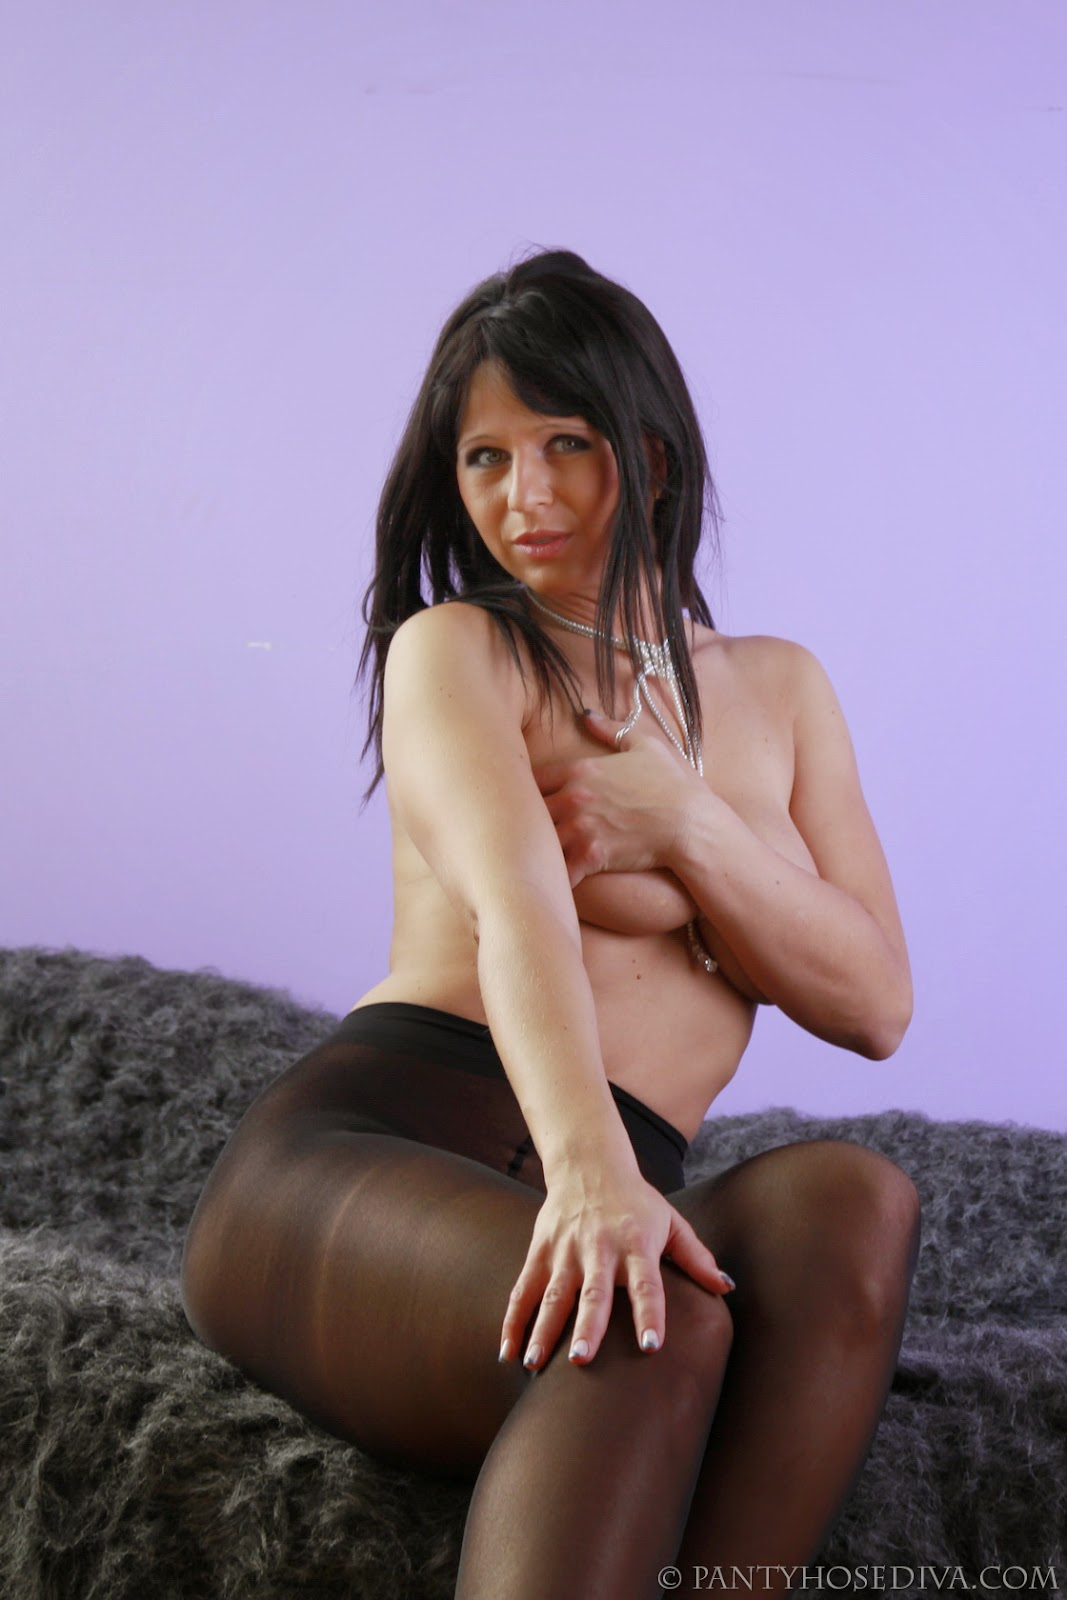 Haired Pantyhose 73